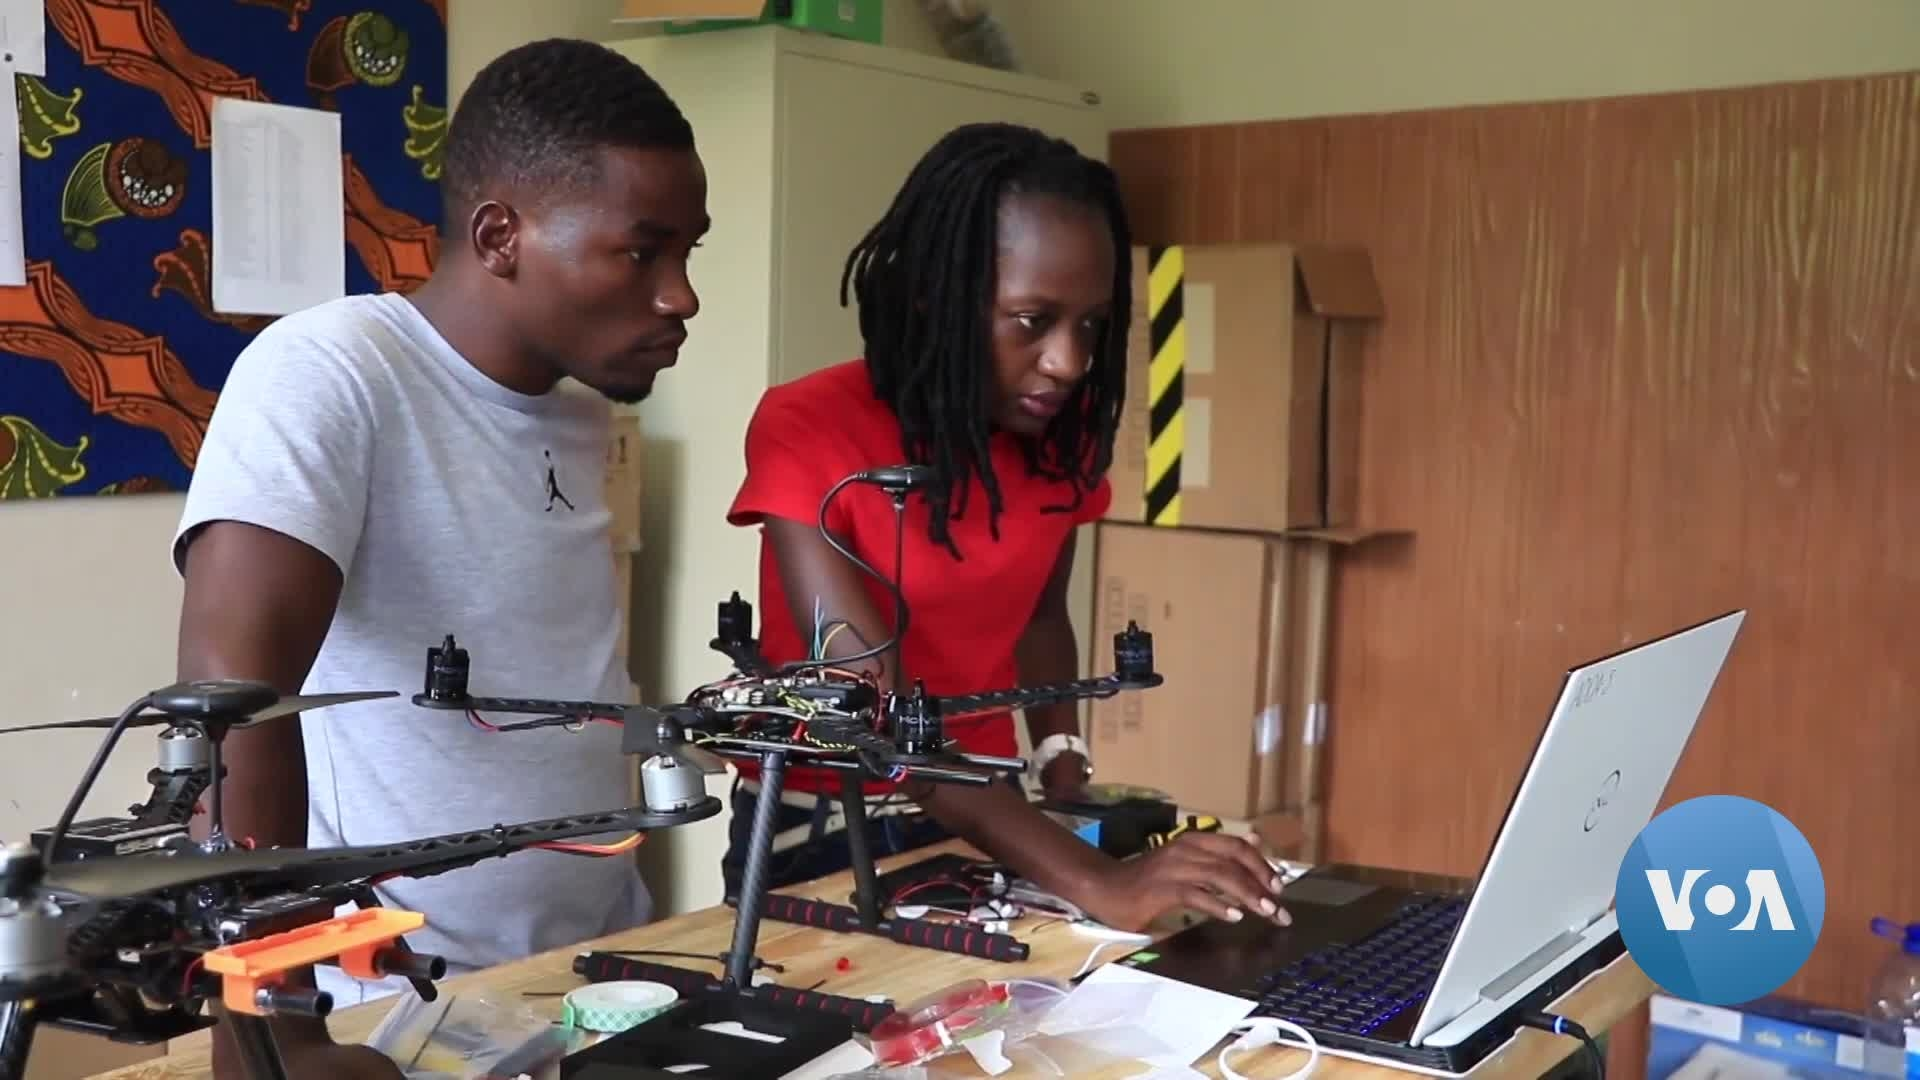 Malawi Hosts Africa's First Drone Academy